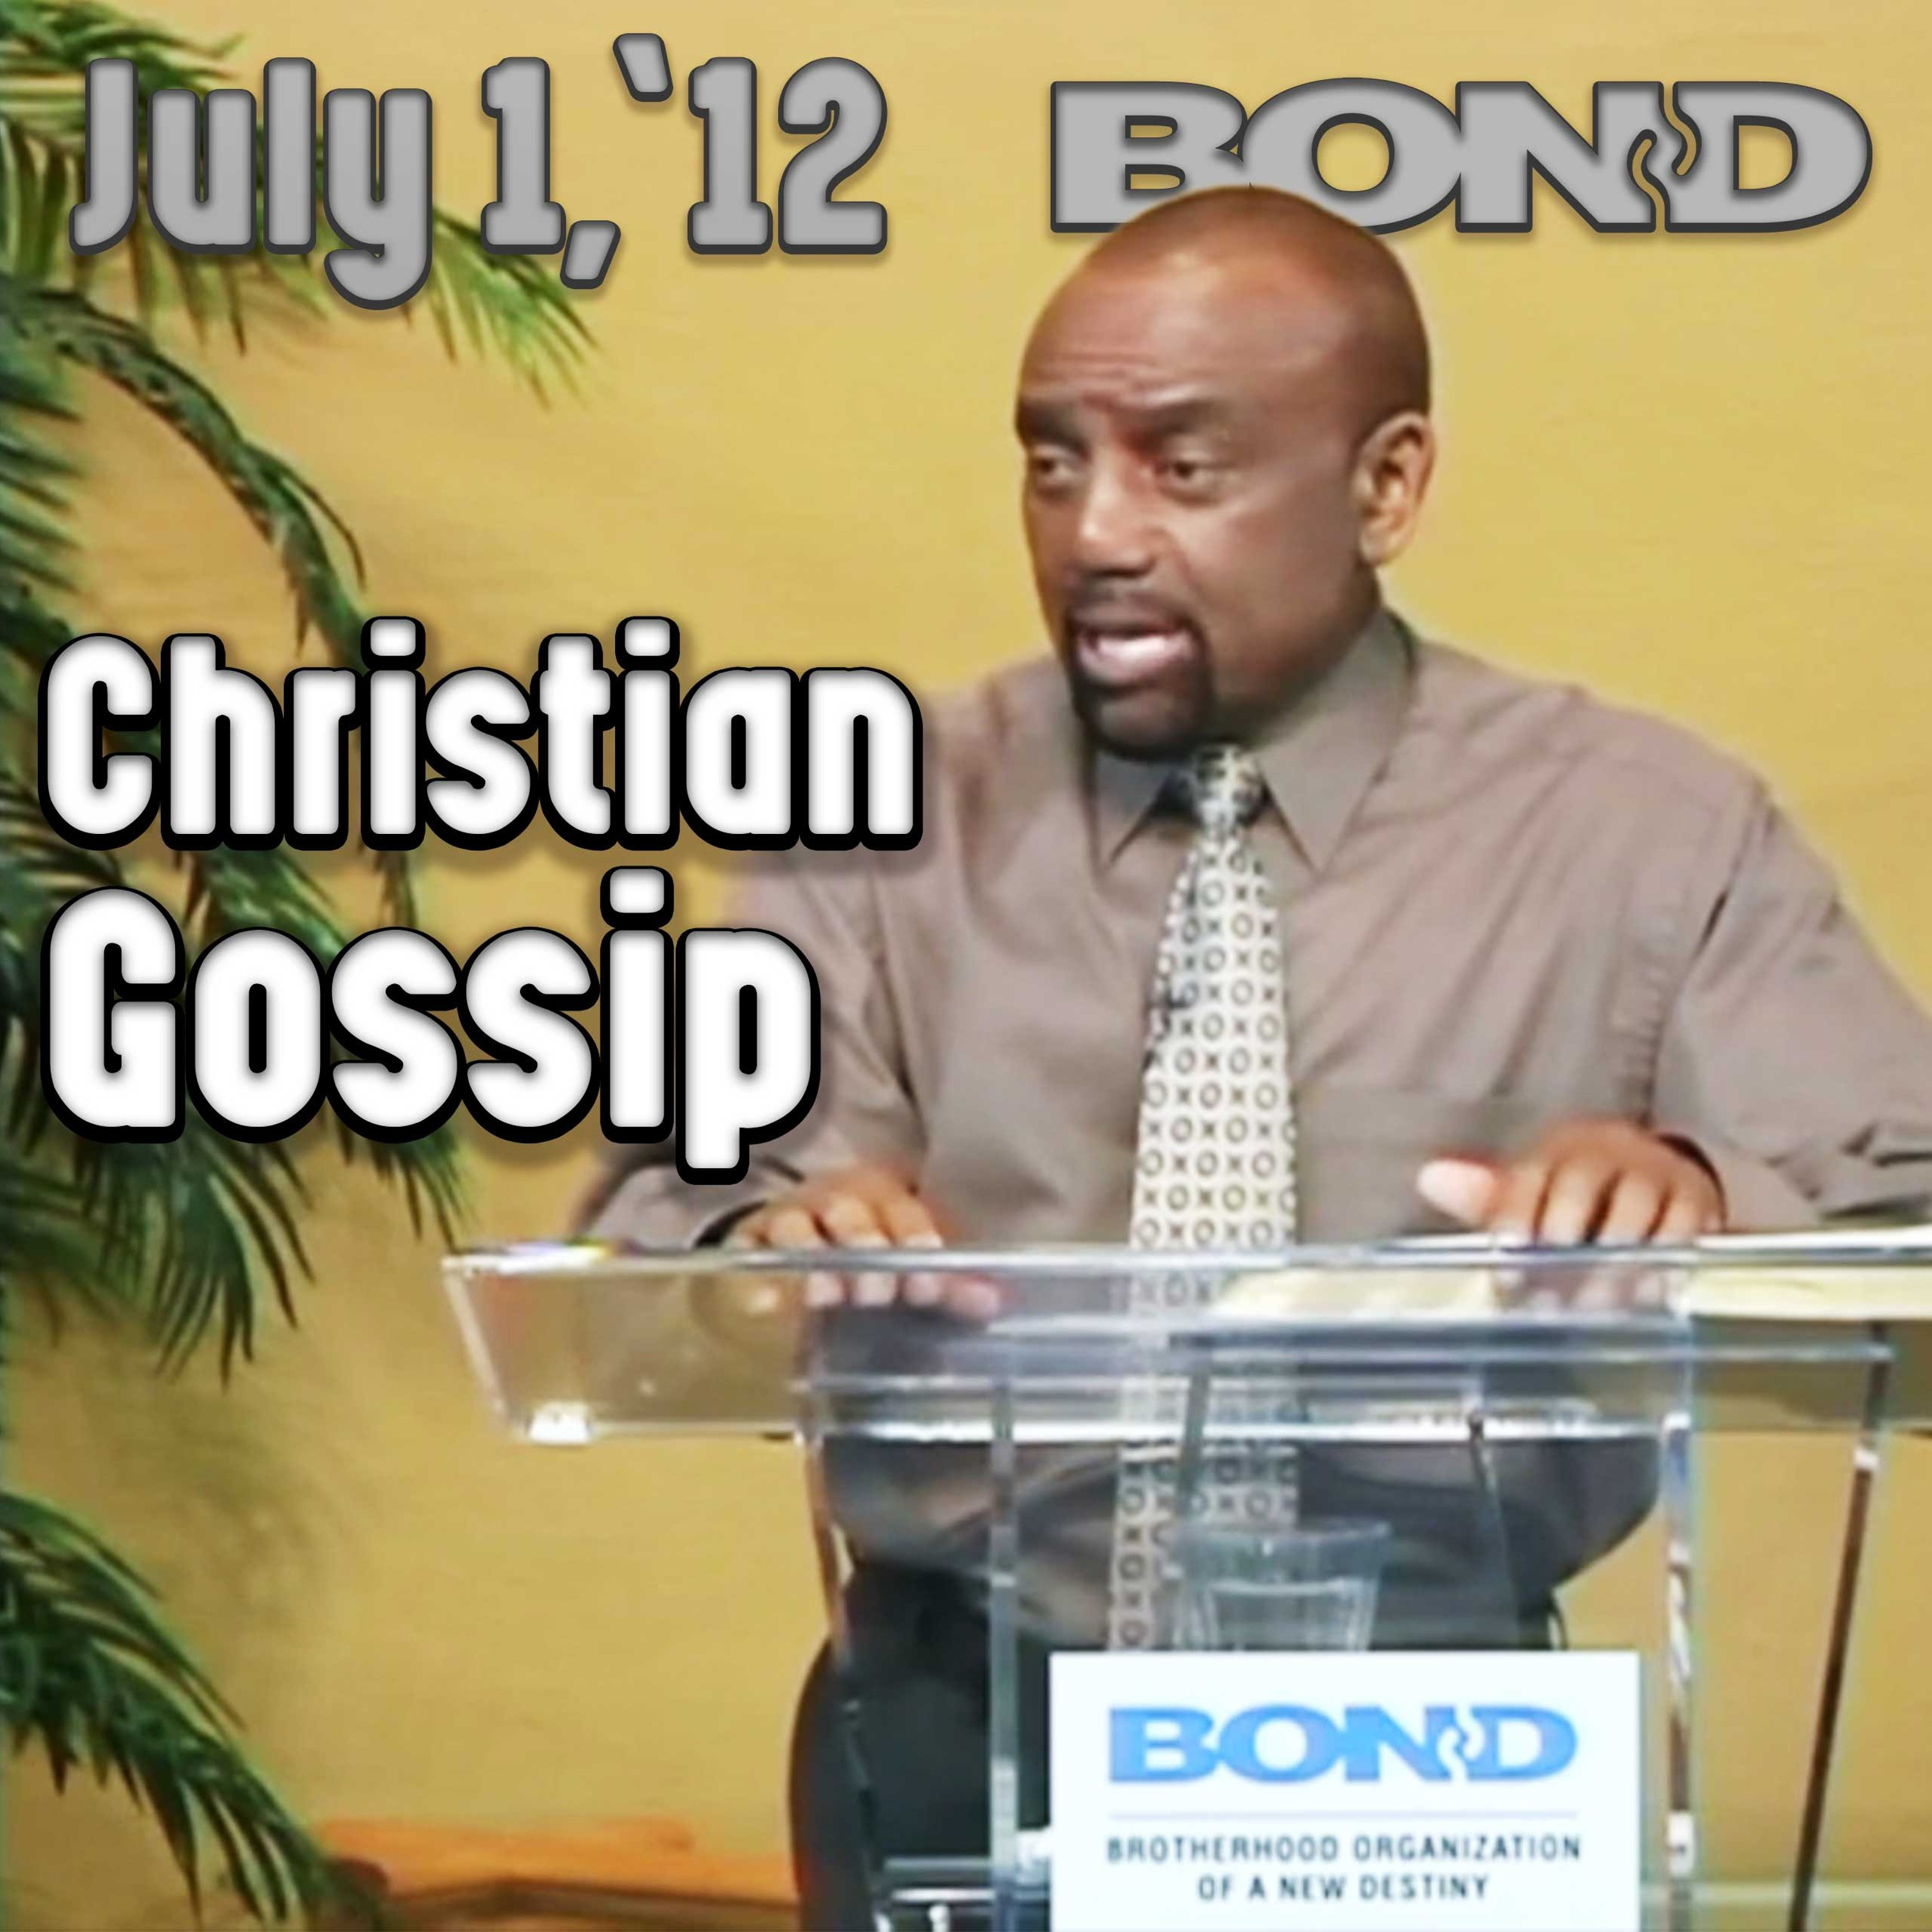 07/01/12 Why Do Christians Gossip? (Archive Sunday Service)